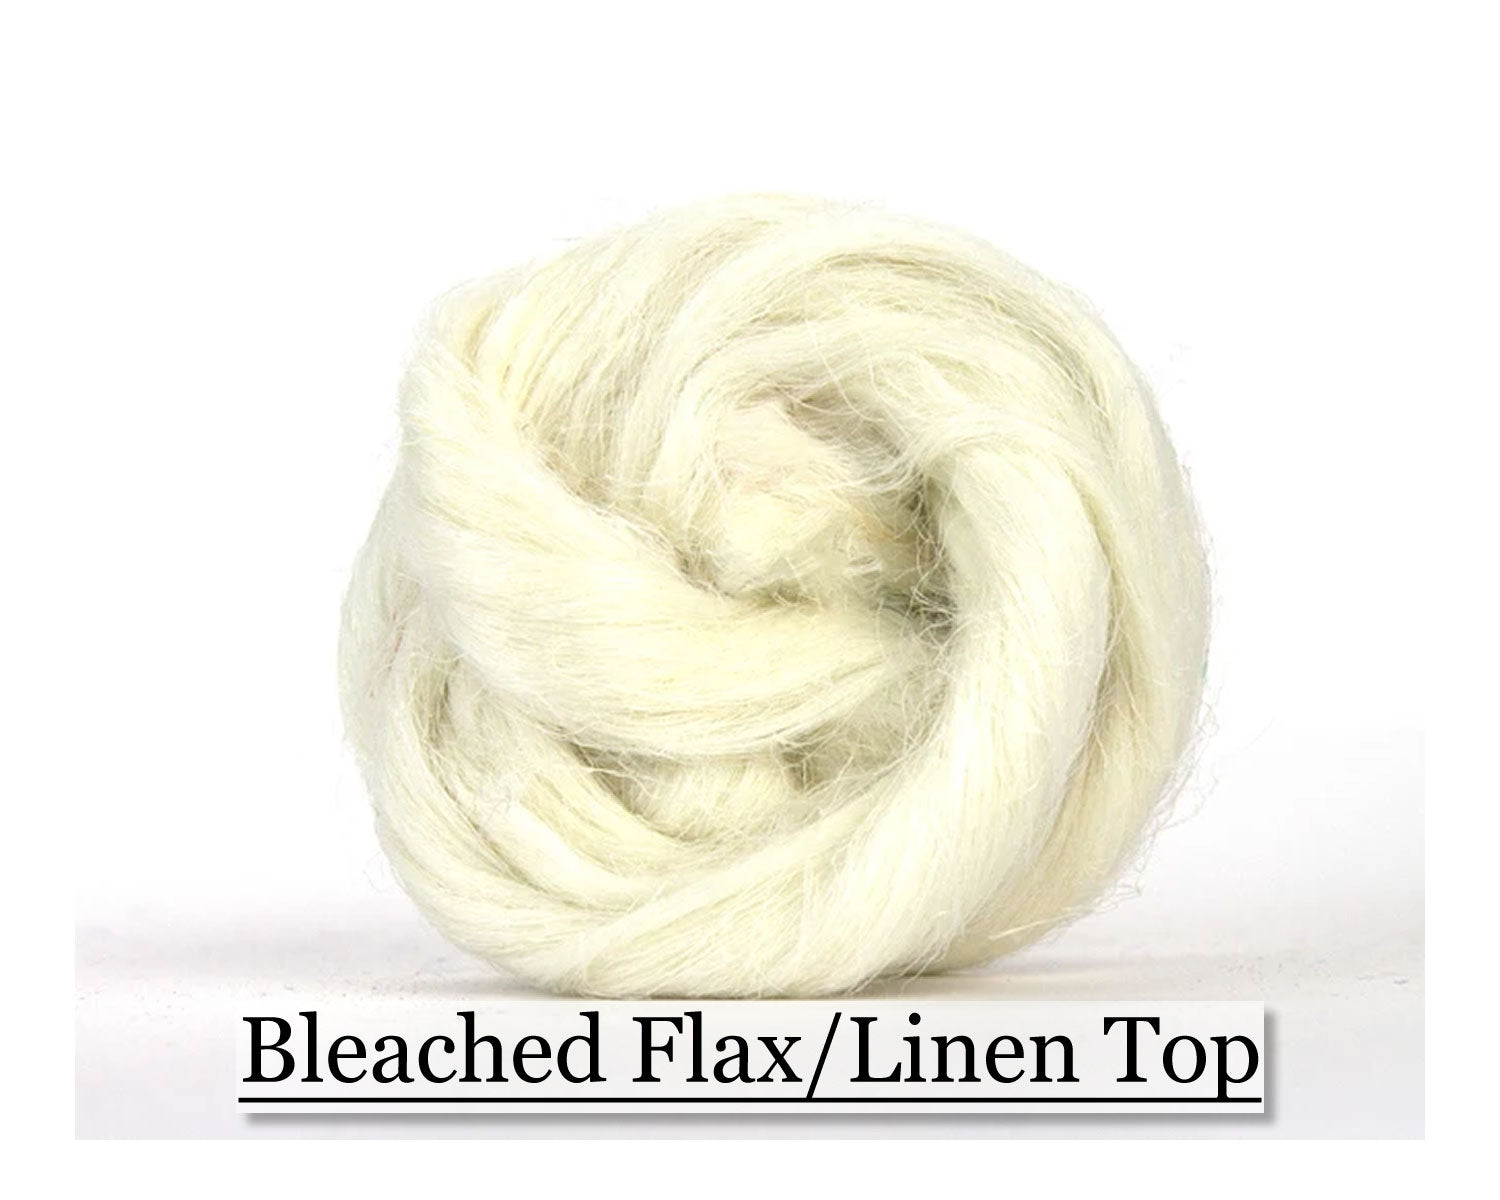 Flax Linen Top - 8 oz